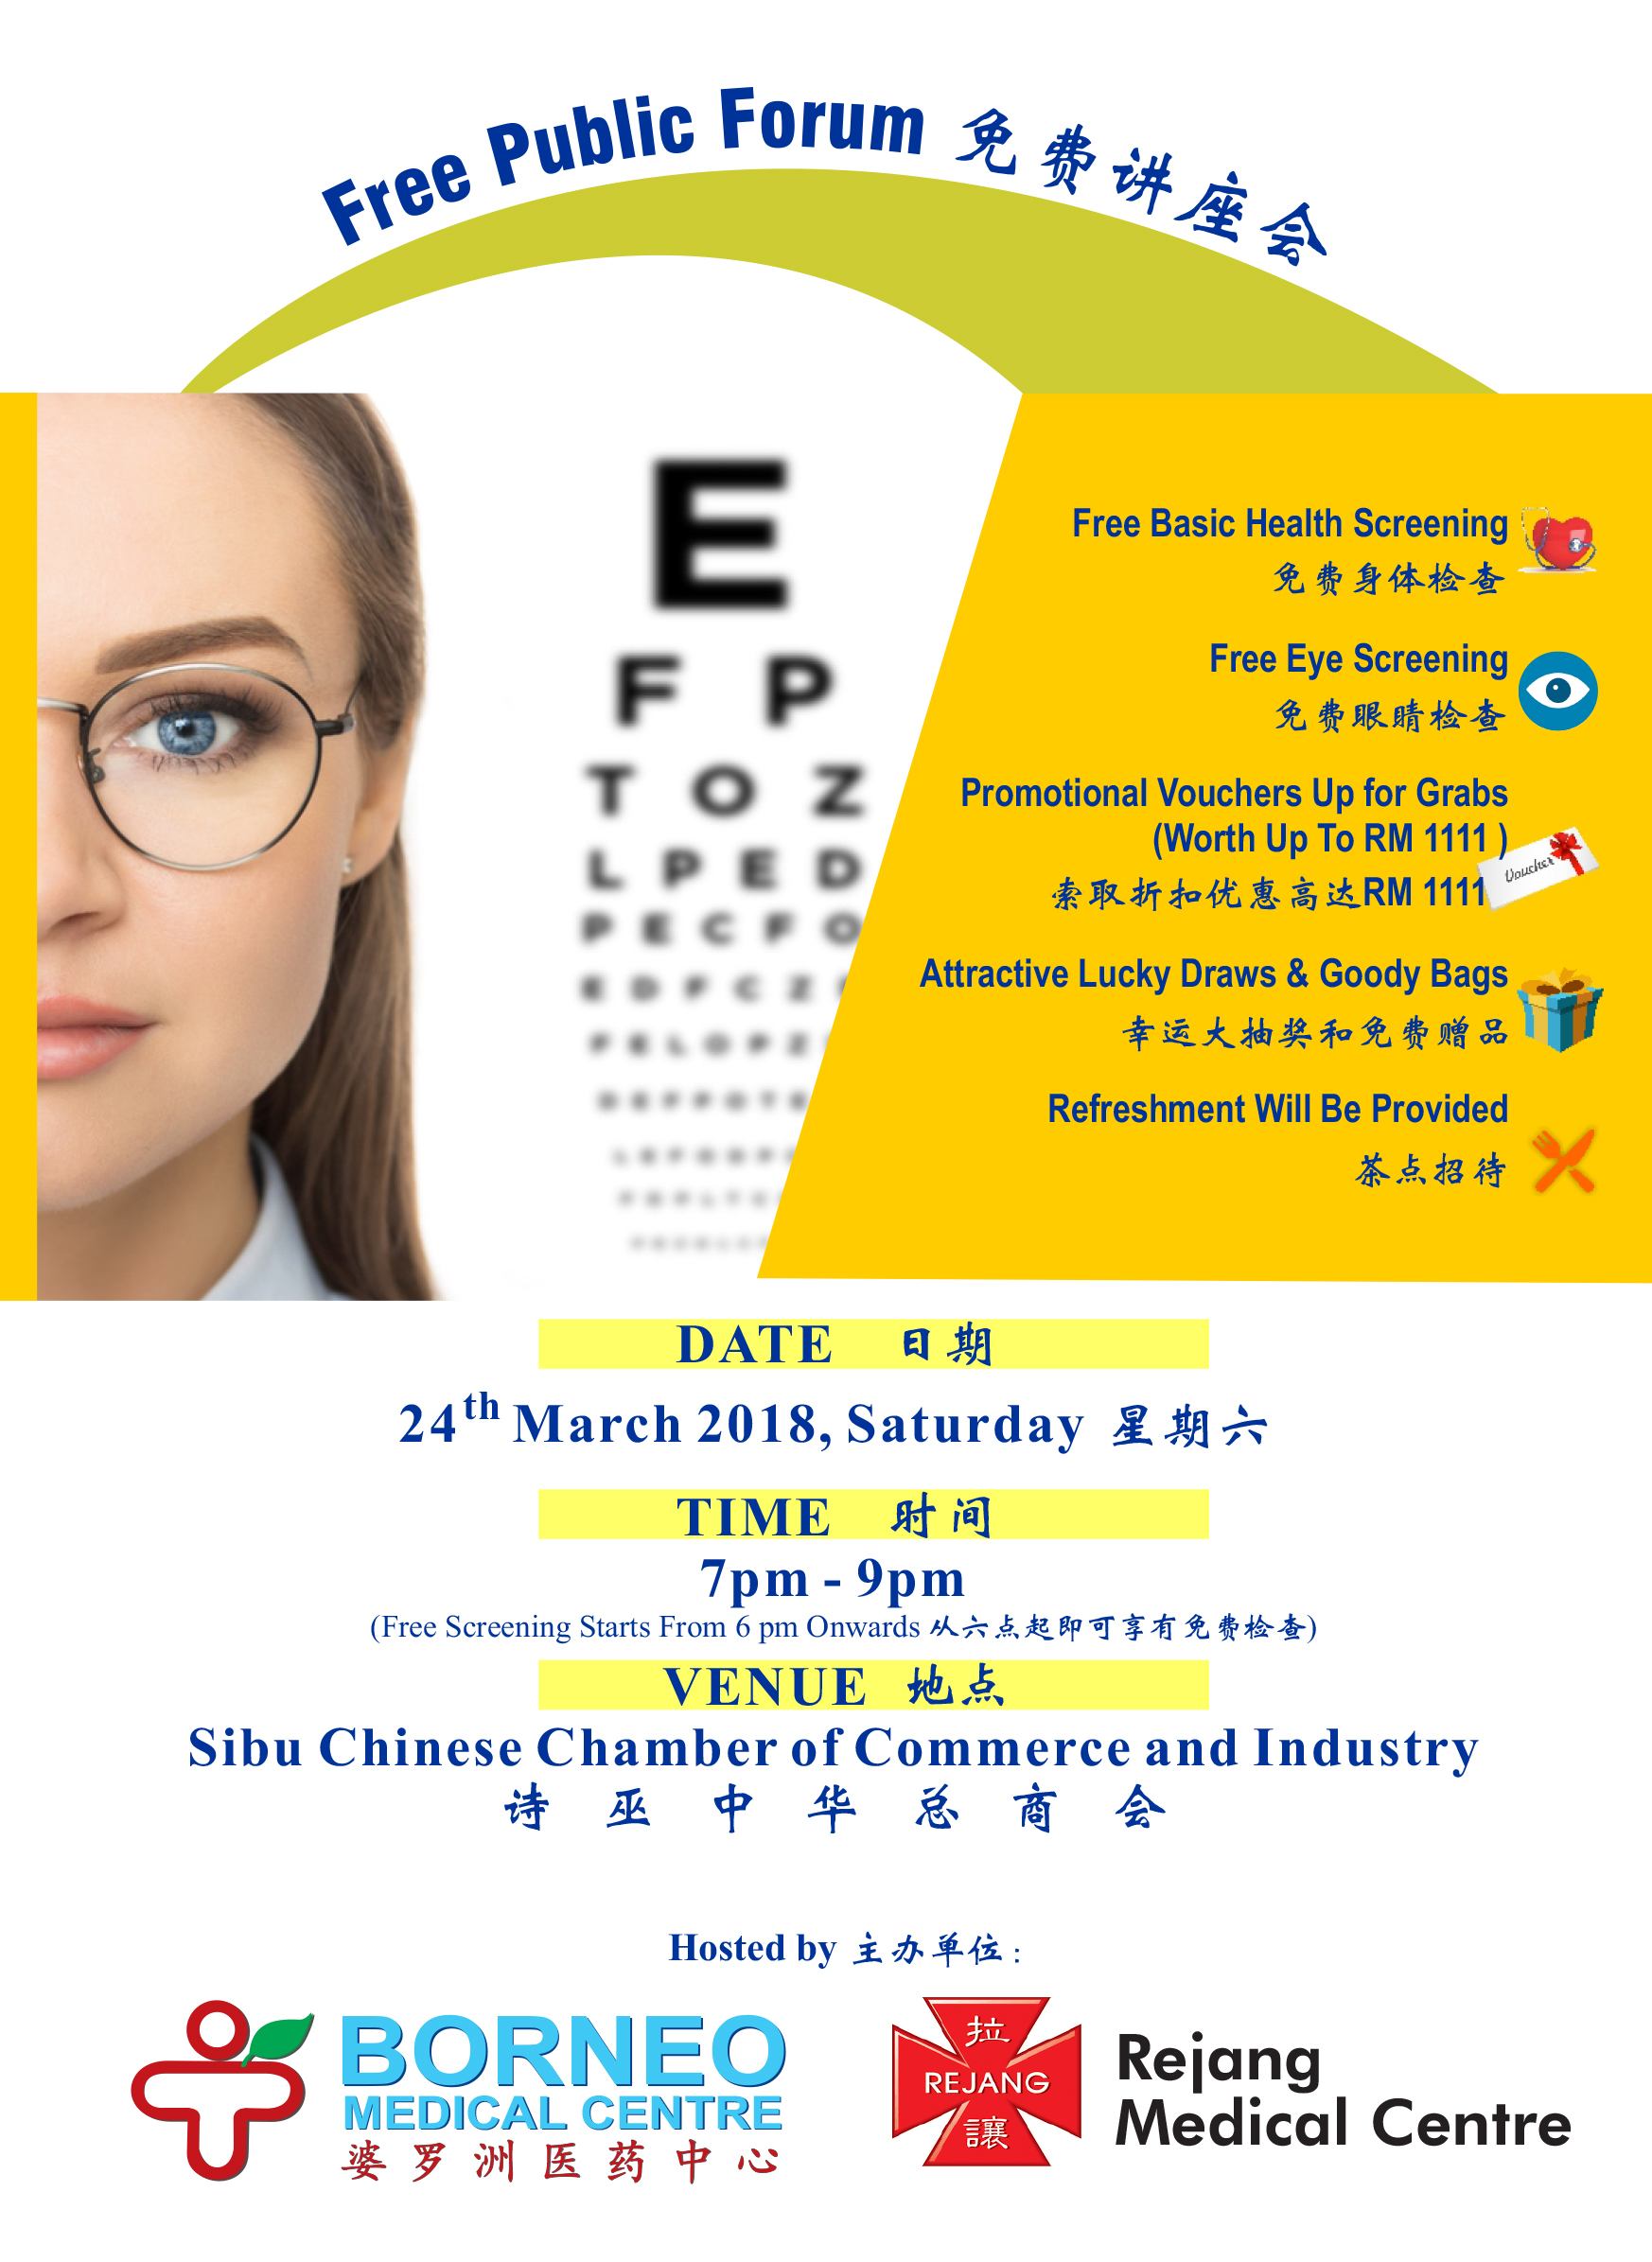 FREE PUBLIC FORUM : Is There Any Problem With My Eyes & LASIK Treatments